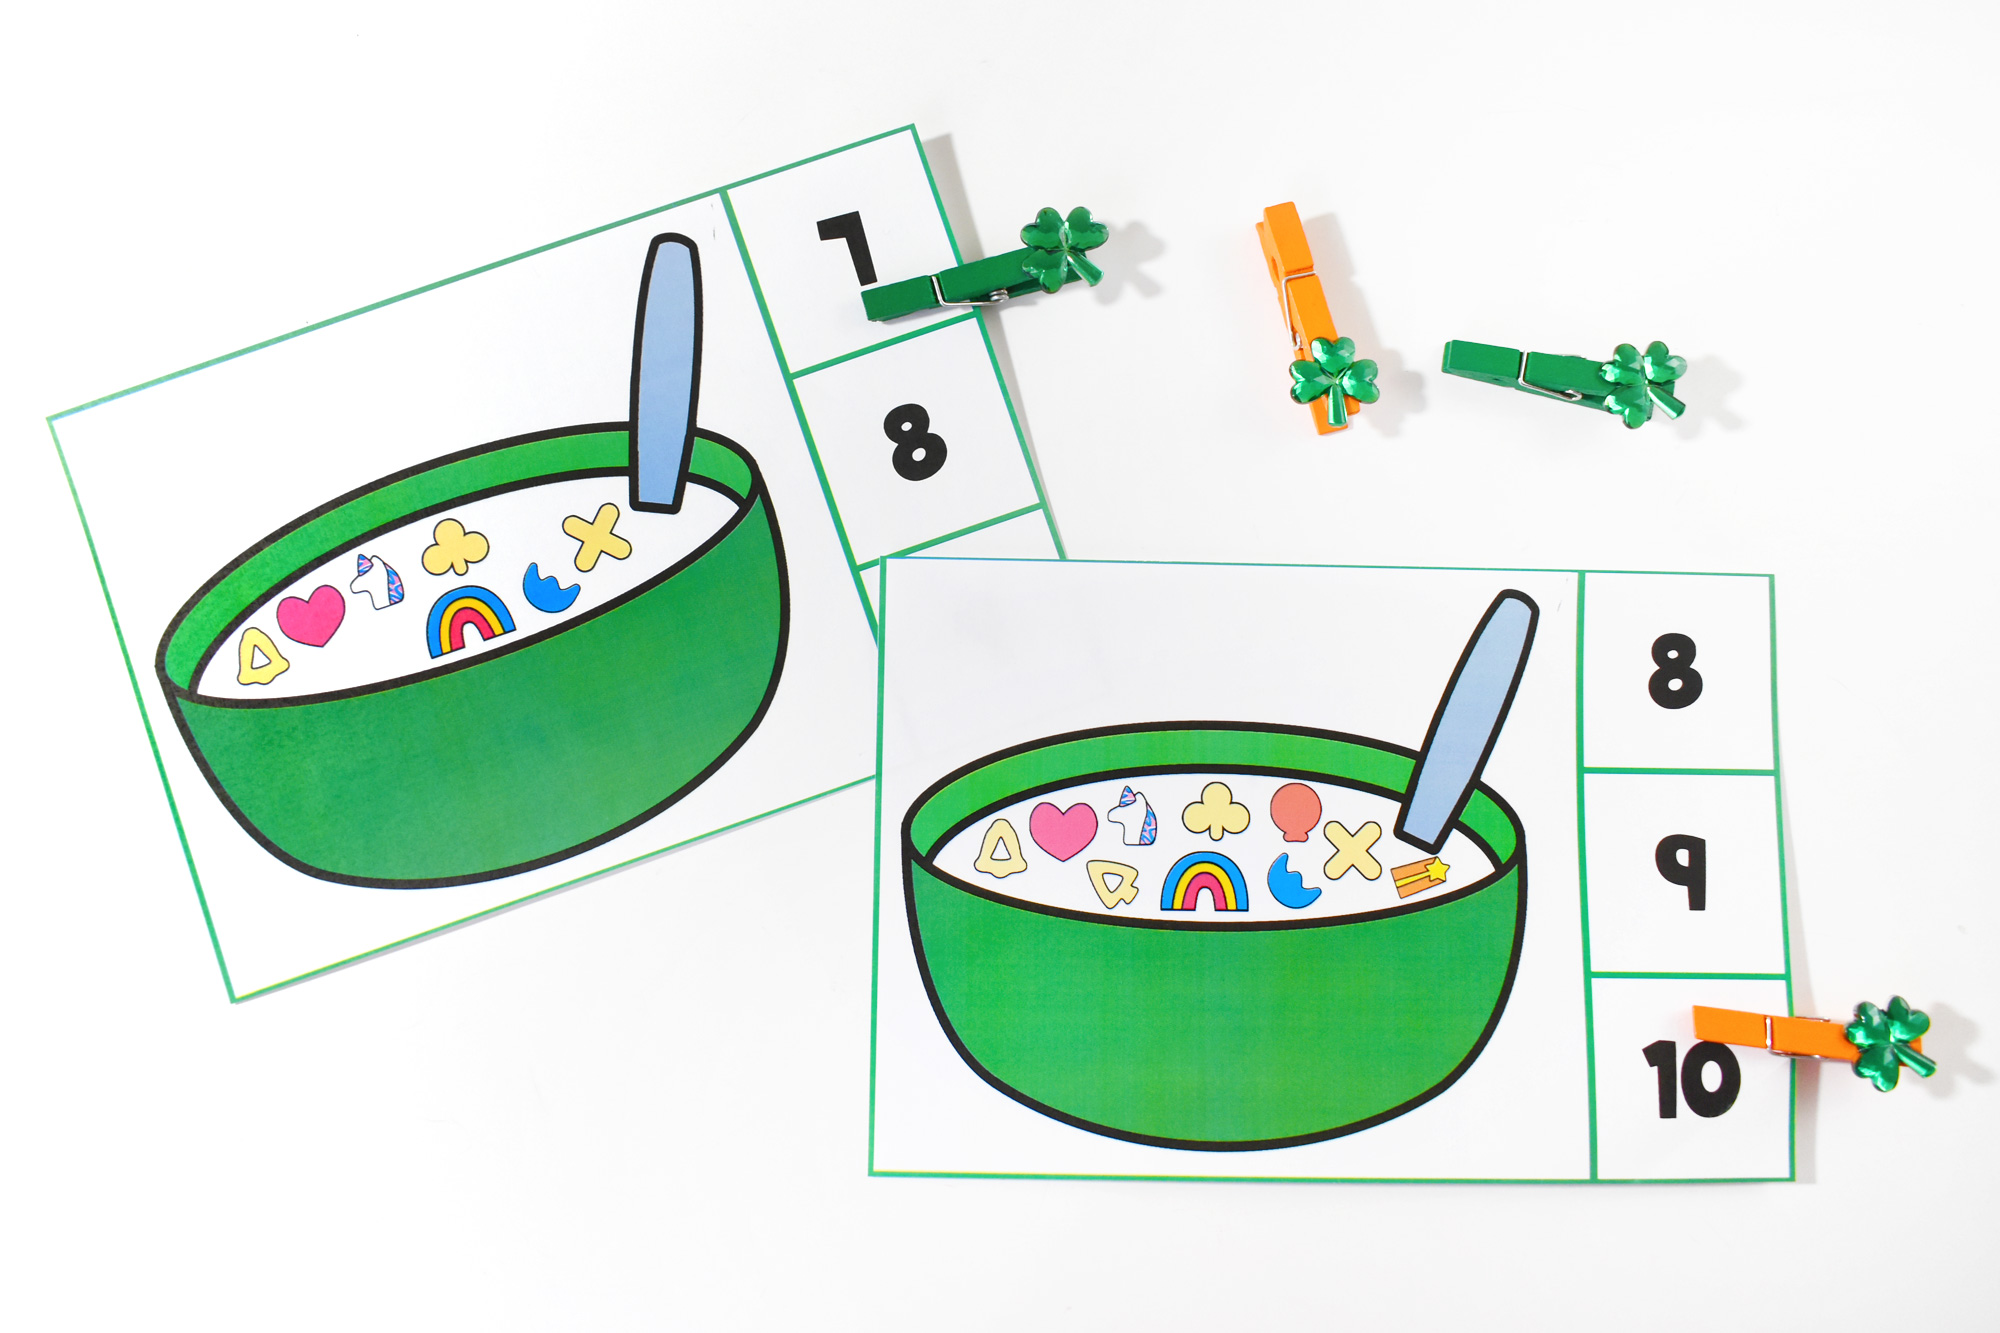 Cereal Count and Clip Cards Free Printable | HolidayPrintables.net #printables #cereal #holidayprintables #weloveprinables #printableforkids